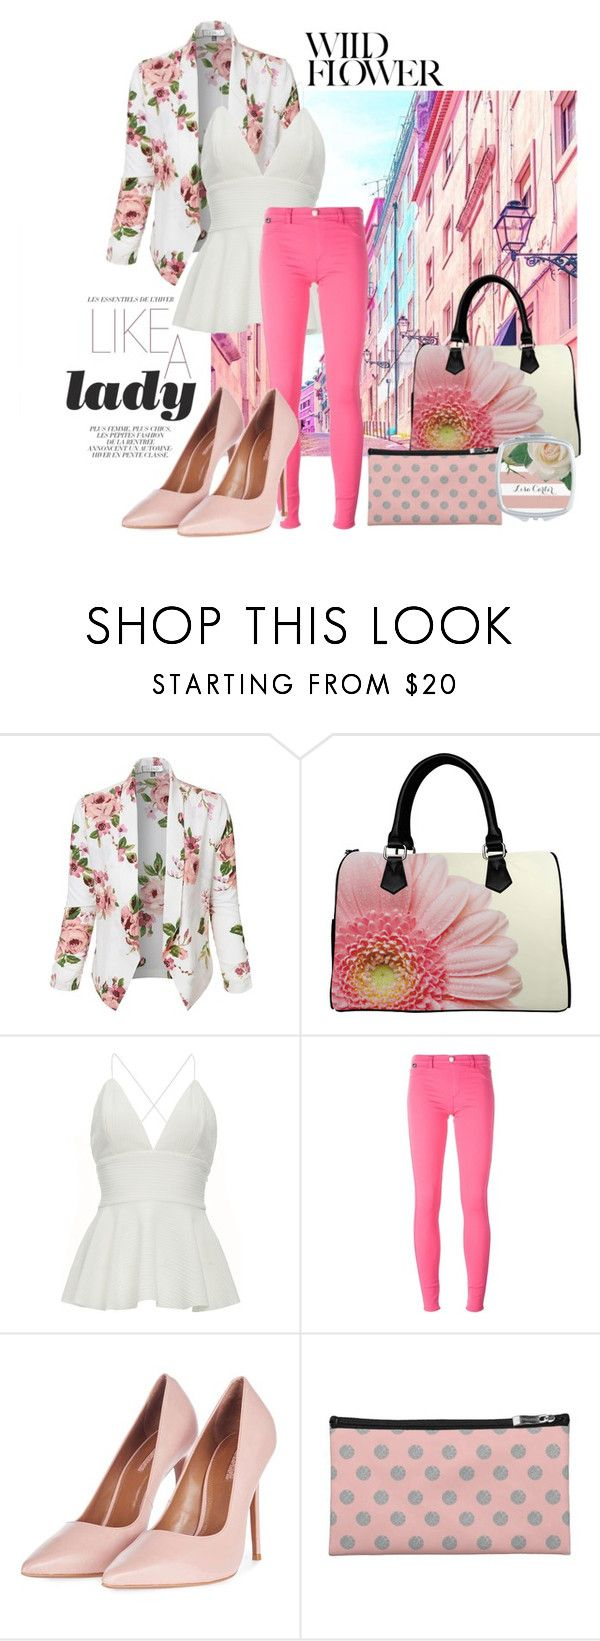 """""""Dainty Florals"""" by colormegirly ❤ liked on Polyvore featuring LE3NO, Love Moschino, Topshop, handbags, fashionset and polyvoreset"""